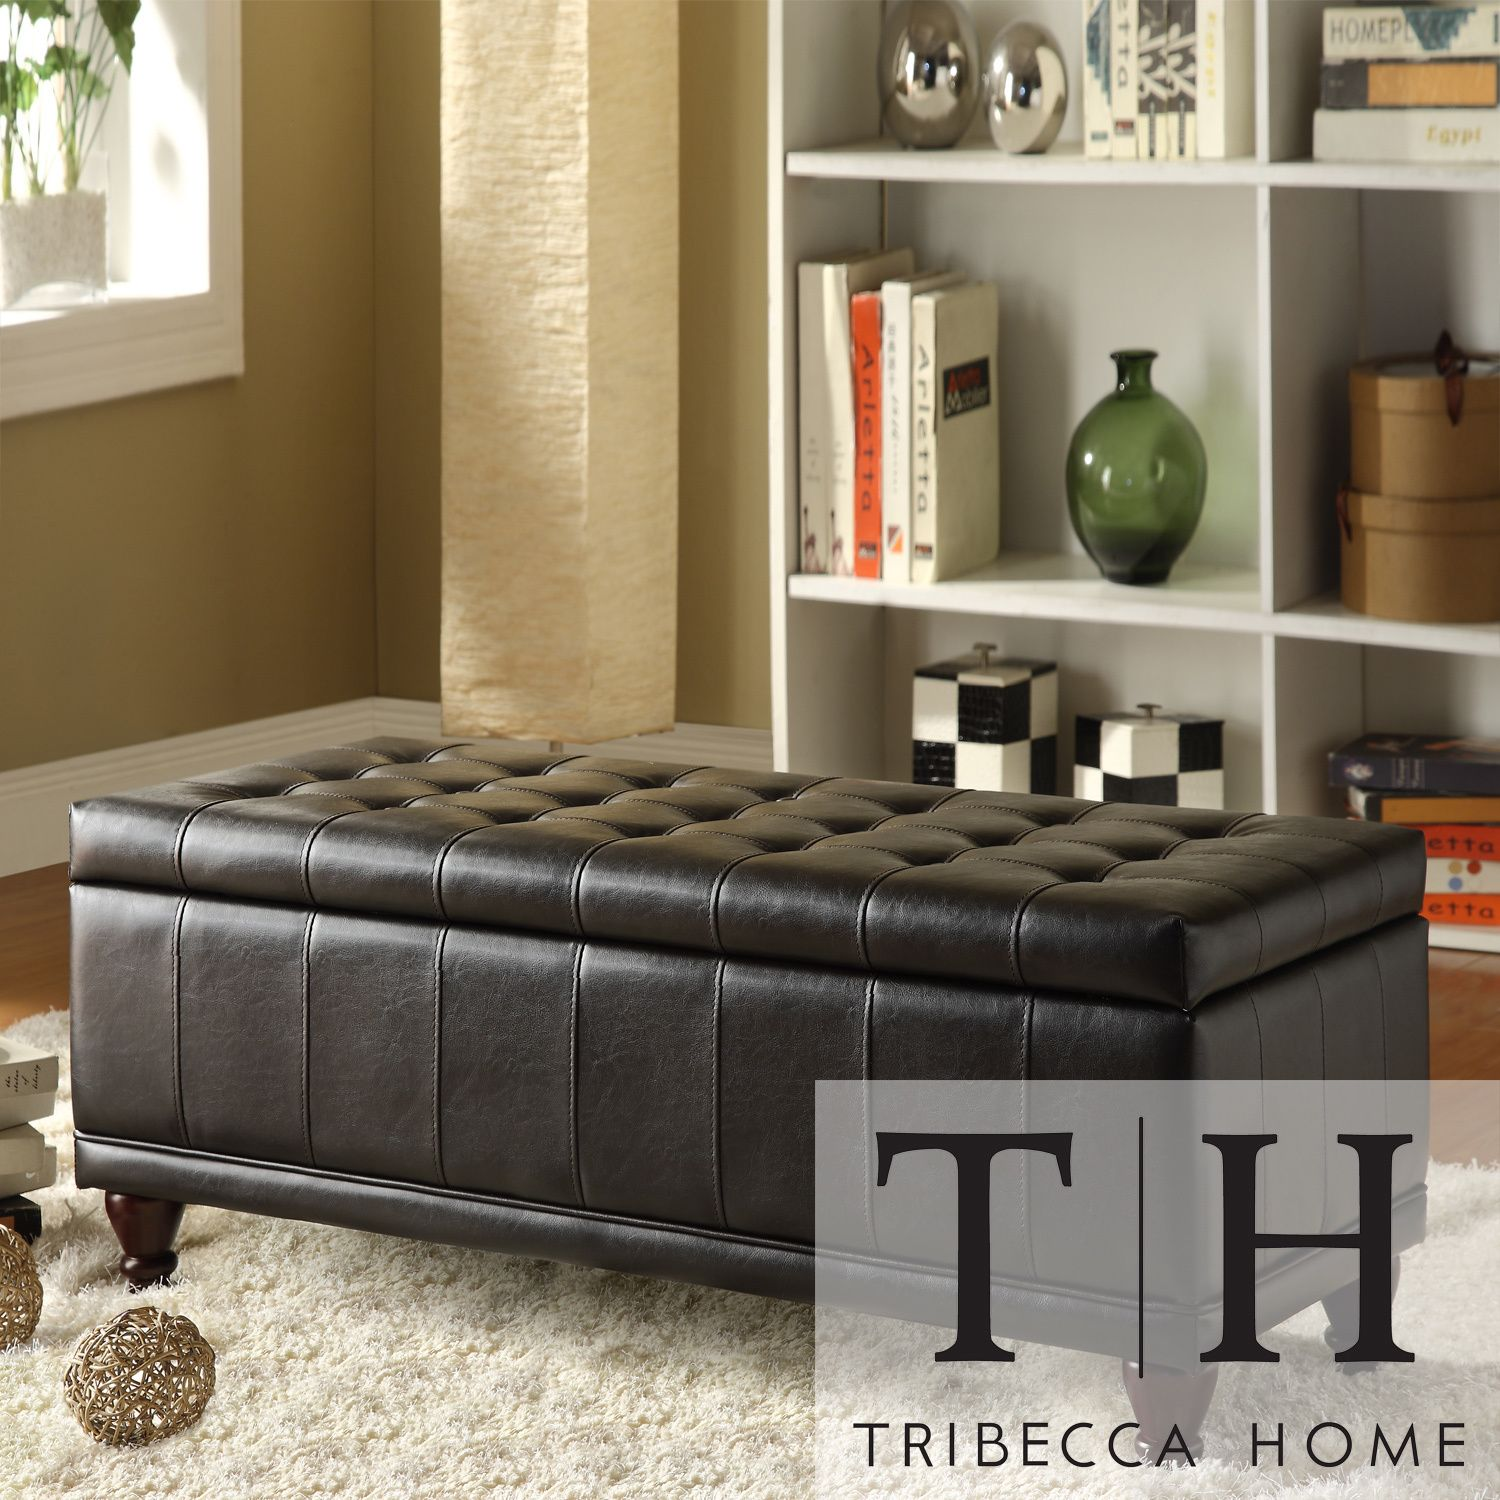 This black brown wood storage bench can be used to store items and to  provide extra